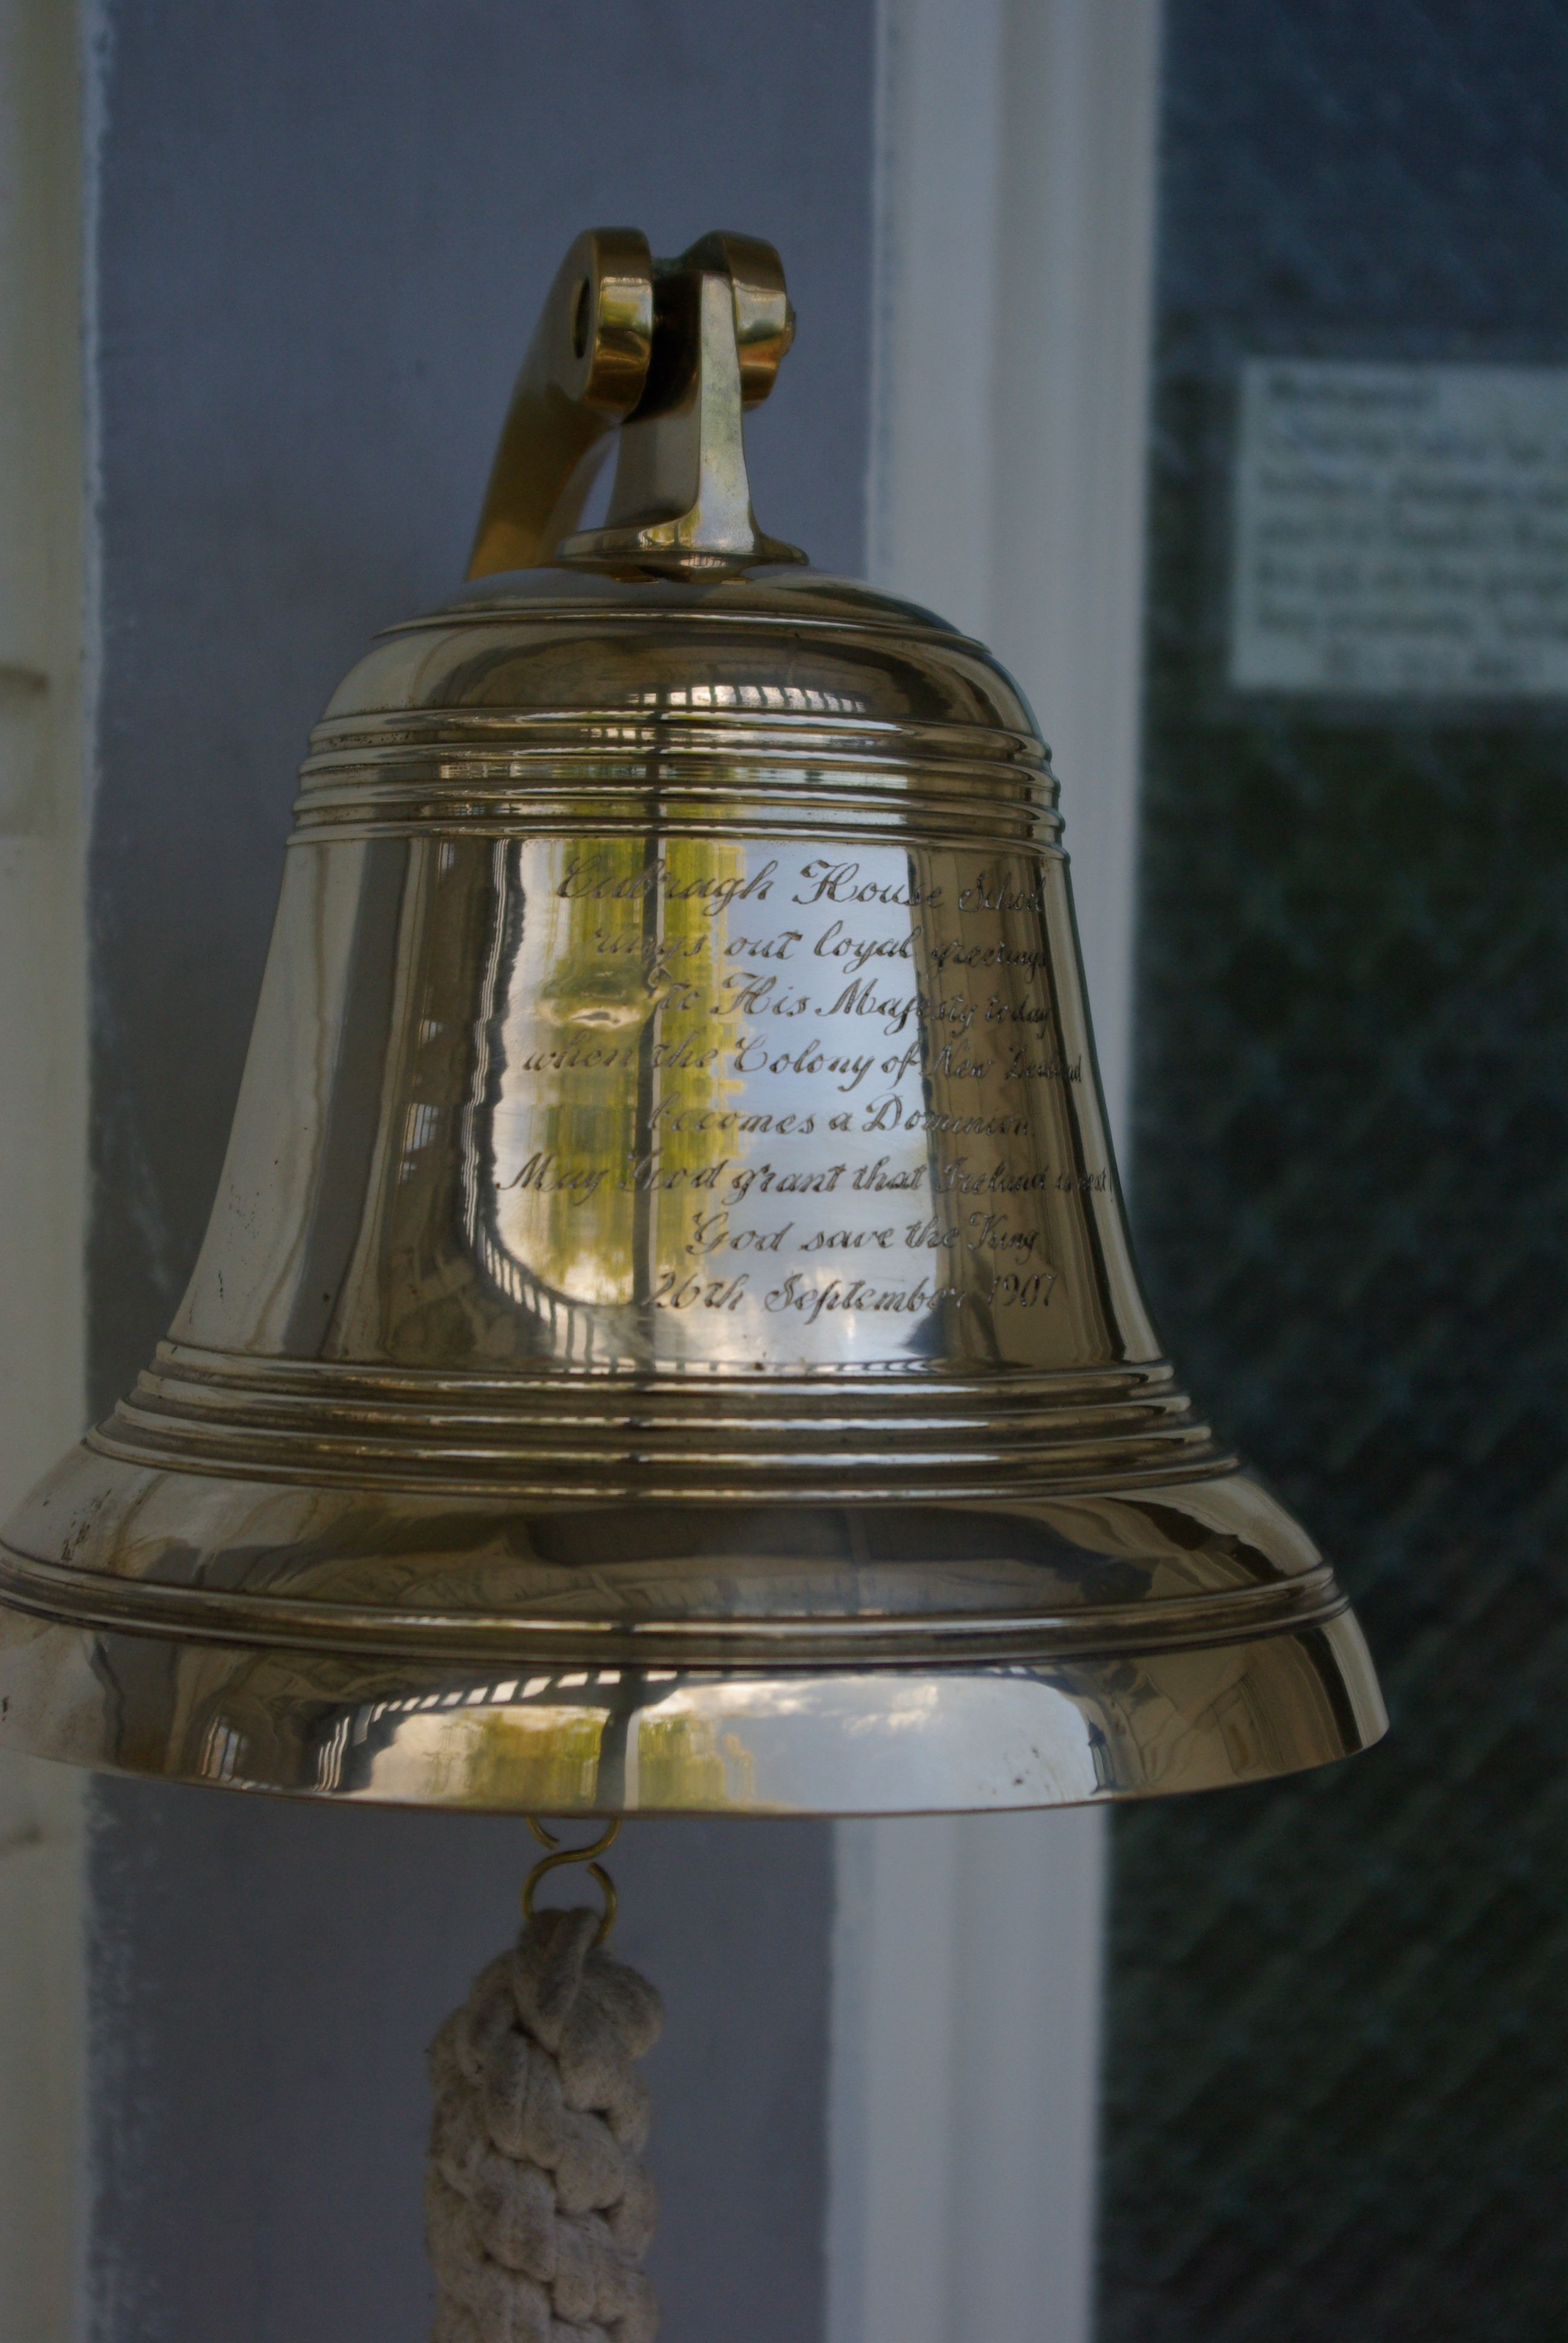 The 1907 brass bell from Cabragh House School that hangs at the door of Amber House Bed and Breakfast in the Nelson-Tasman region of the South Island of New Zealand